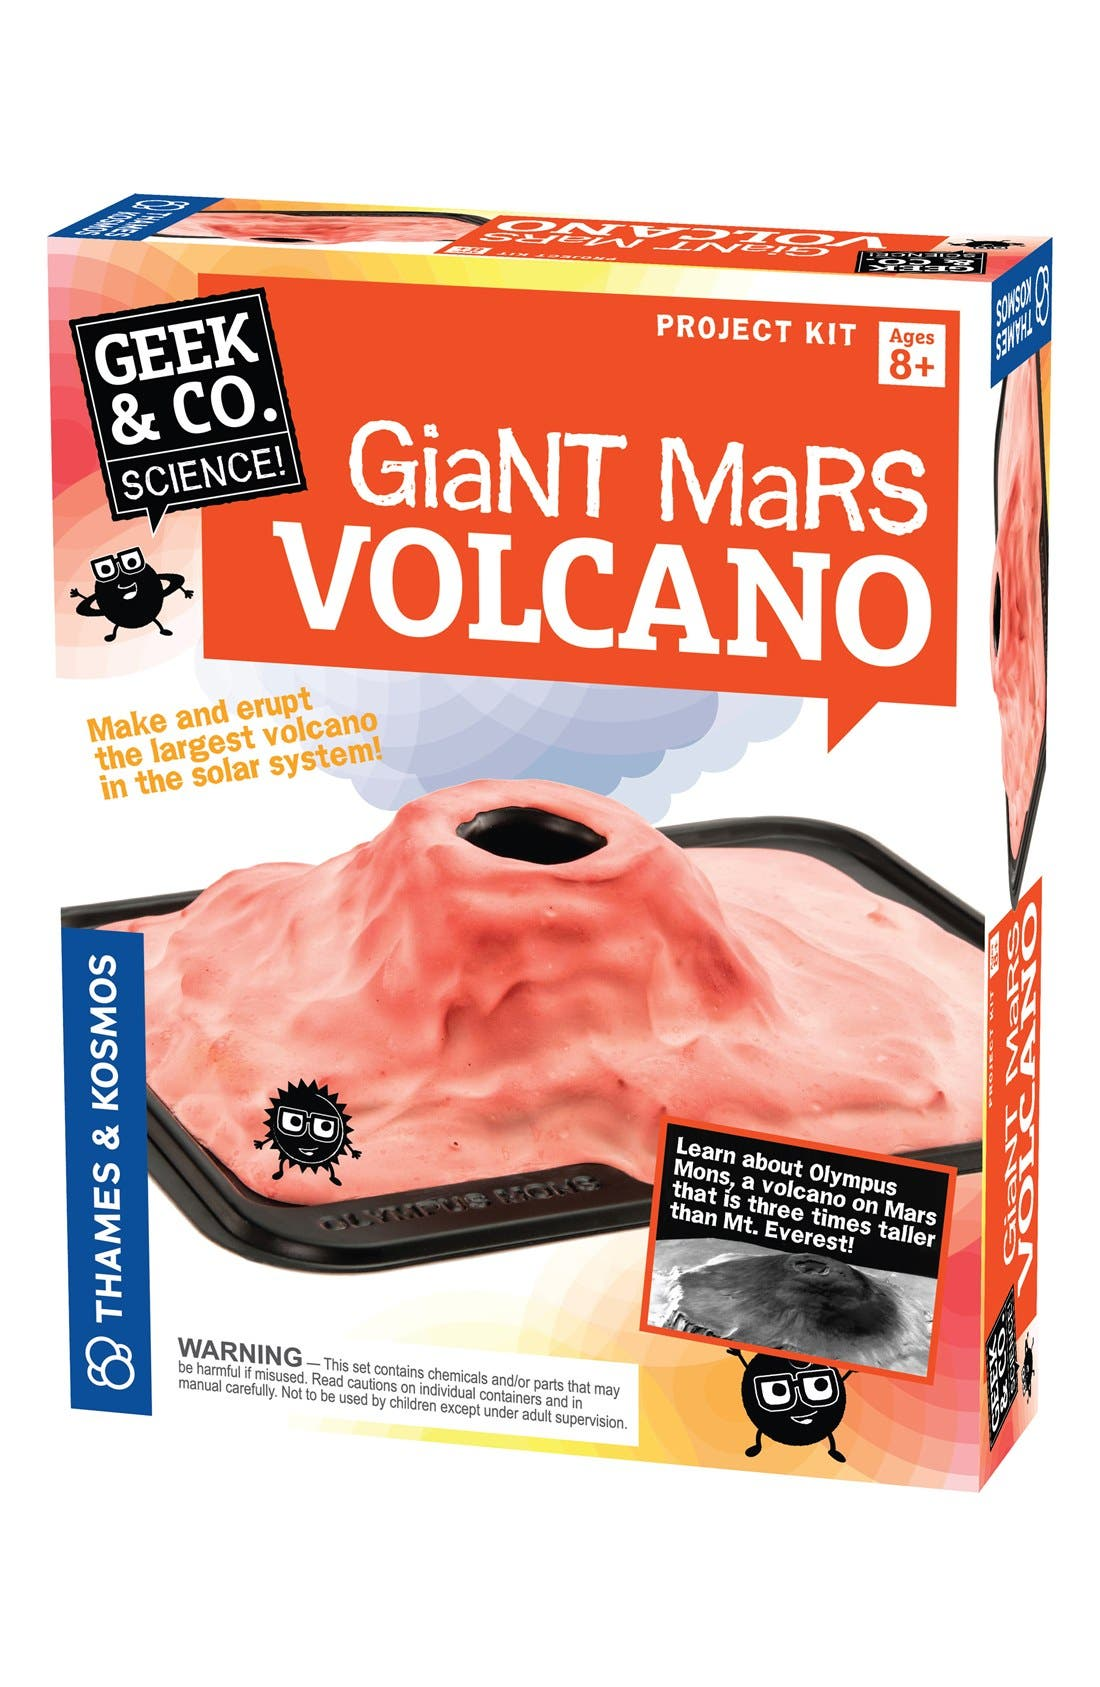 Thames & Kosmos 'Giant Mars Volcano' Project Kit